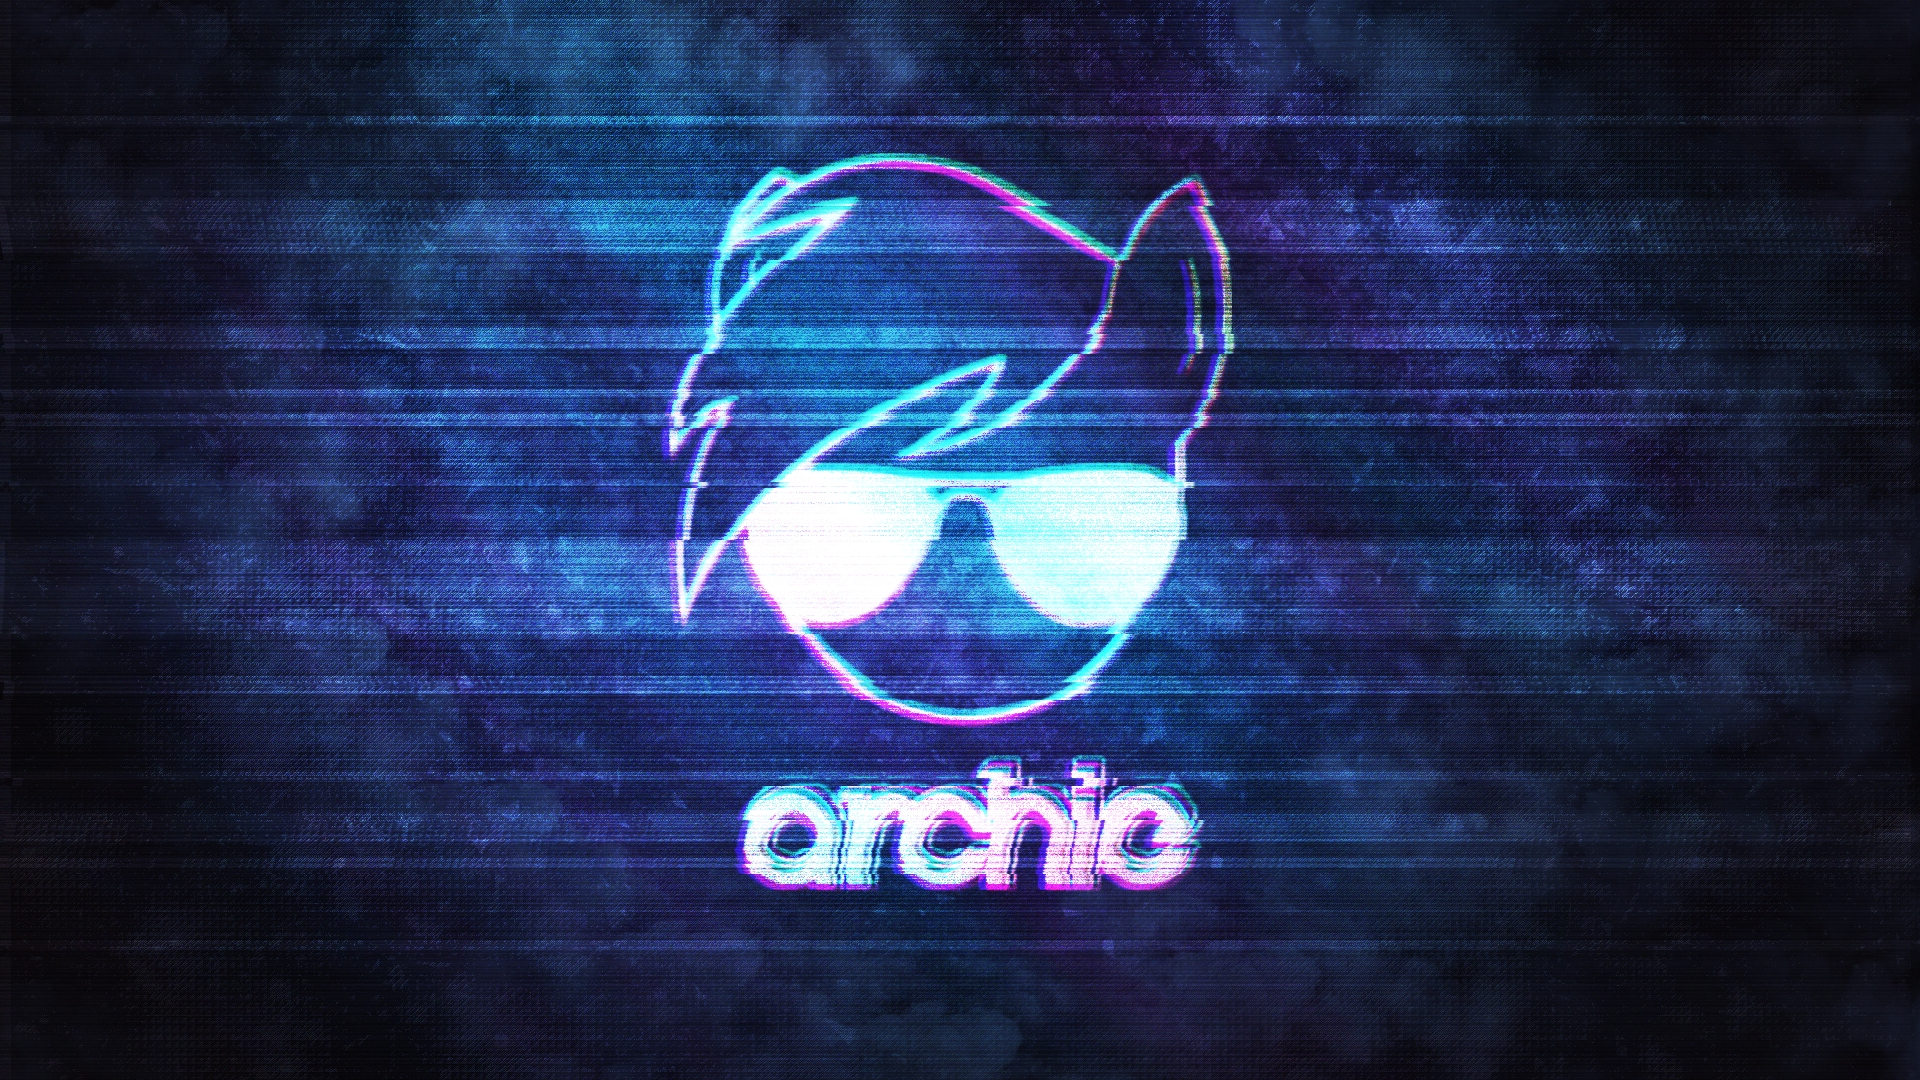 bronies archie my little pony friendship is magic 1920x1080 1920x1080